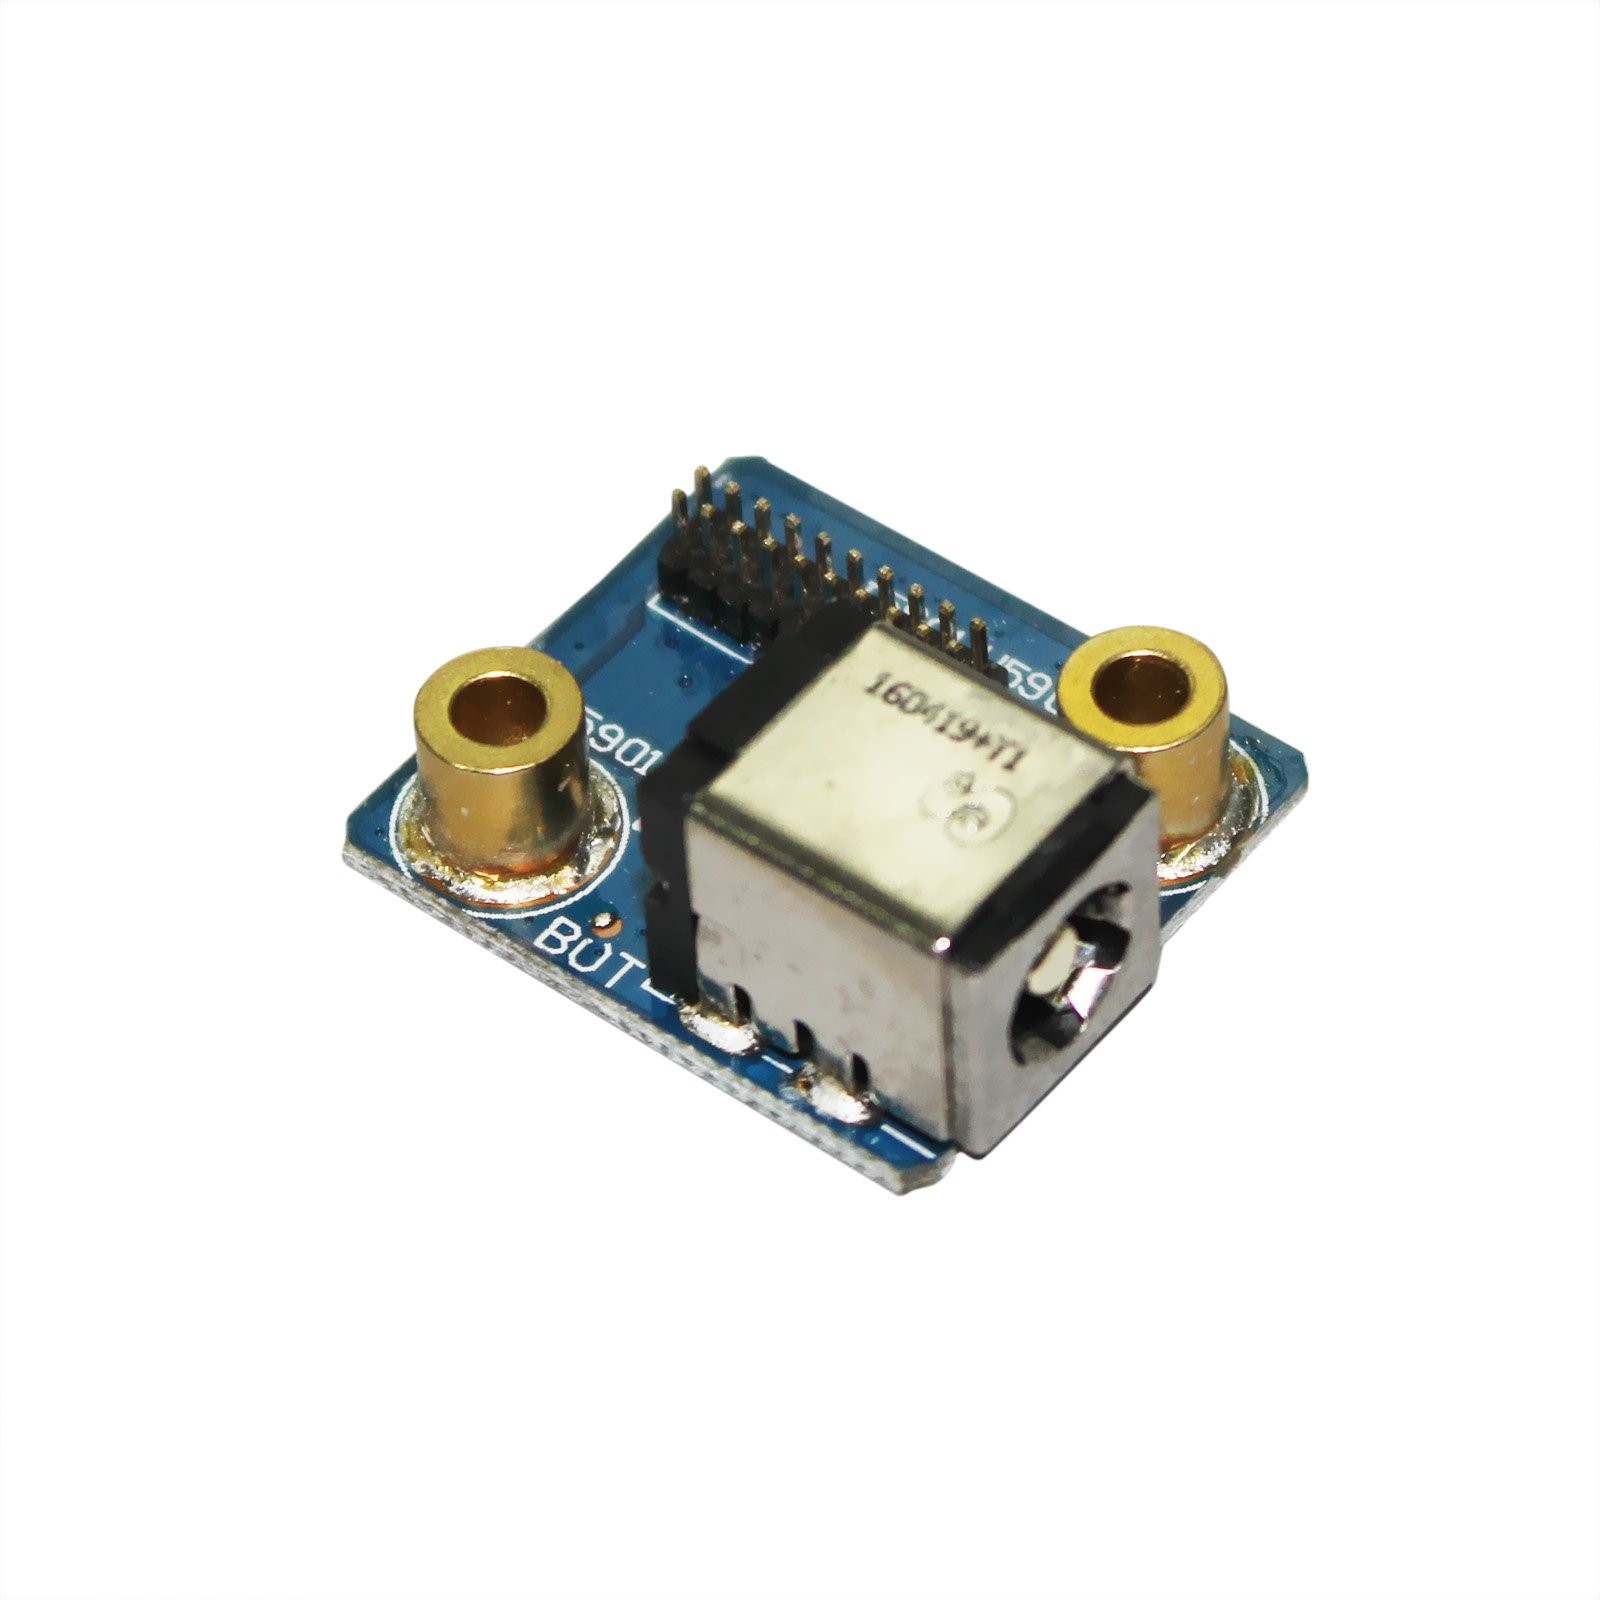 GinTai DC Power Jack Board Charging Port for Asus RoG G75 G75V G75VX G75VW G75VM G75VX-BHI7N1 69N0NQC10C01 by GinTai (Image #4)